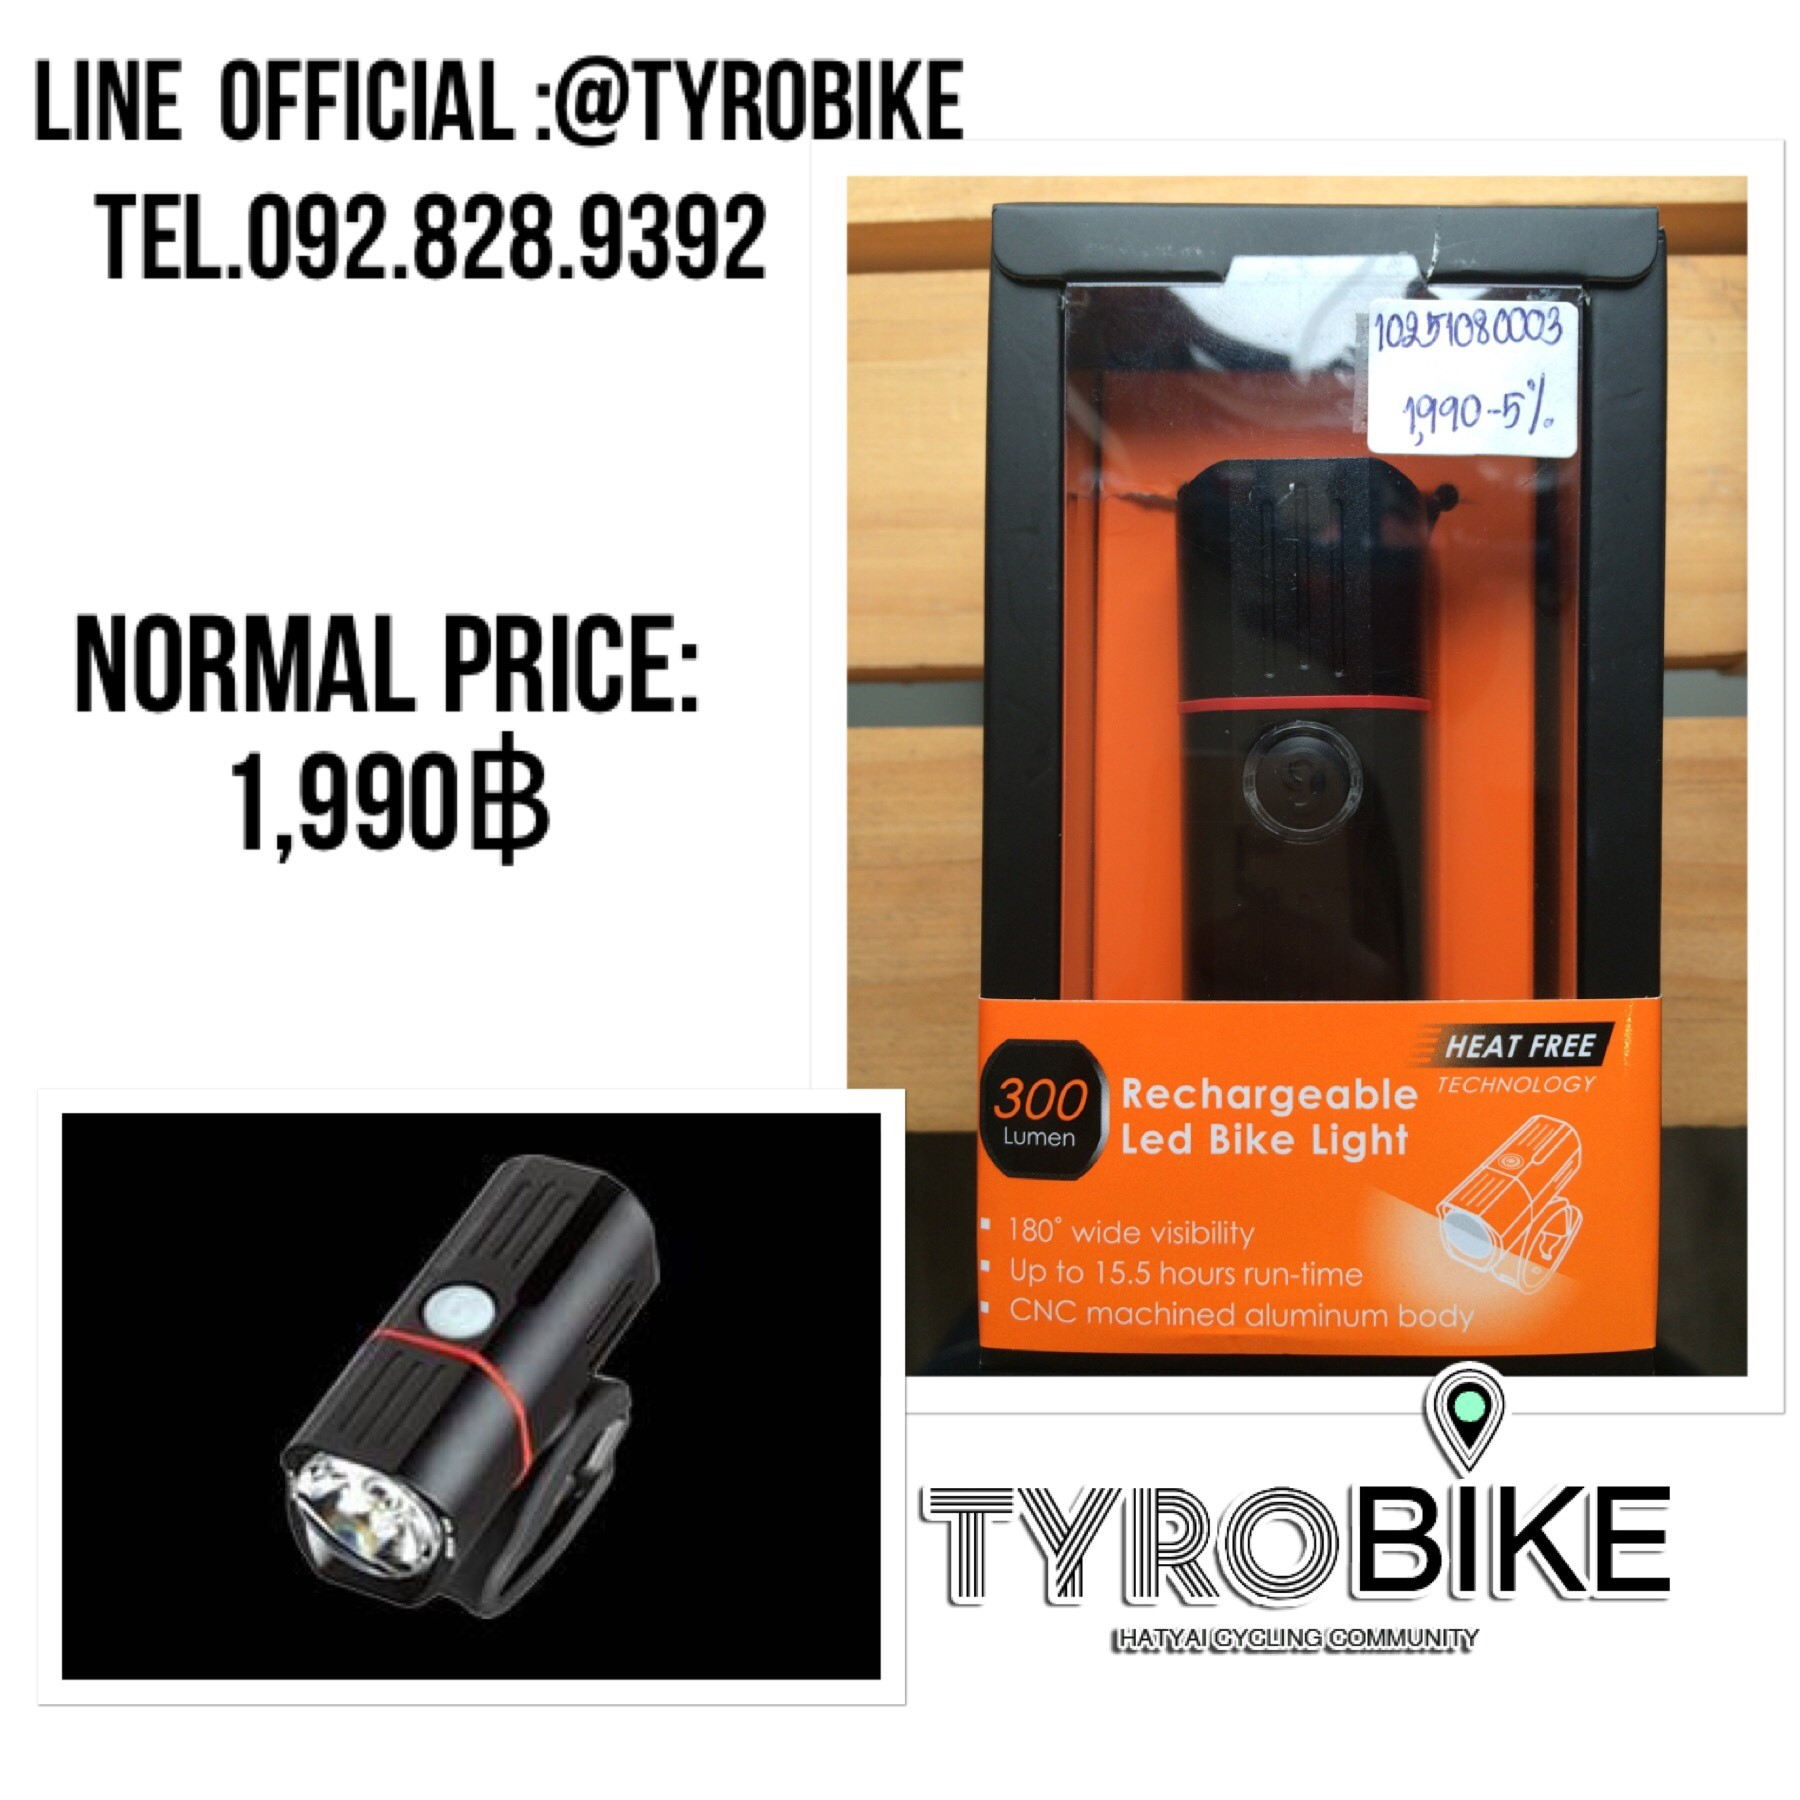 Rechargeable Led Bike Light 300LUMEN